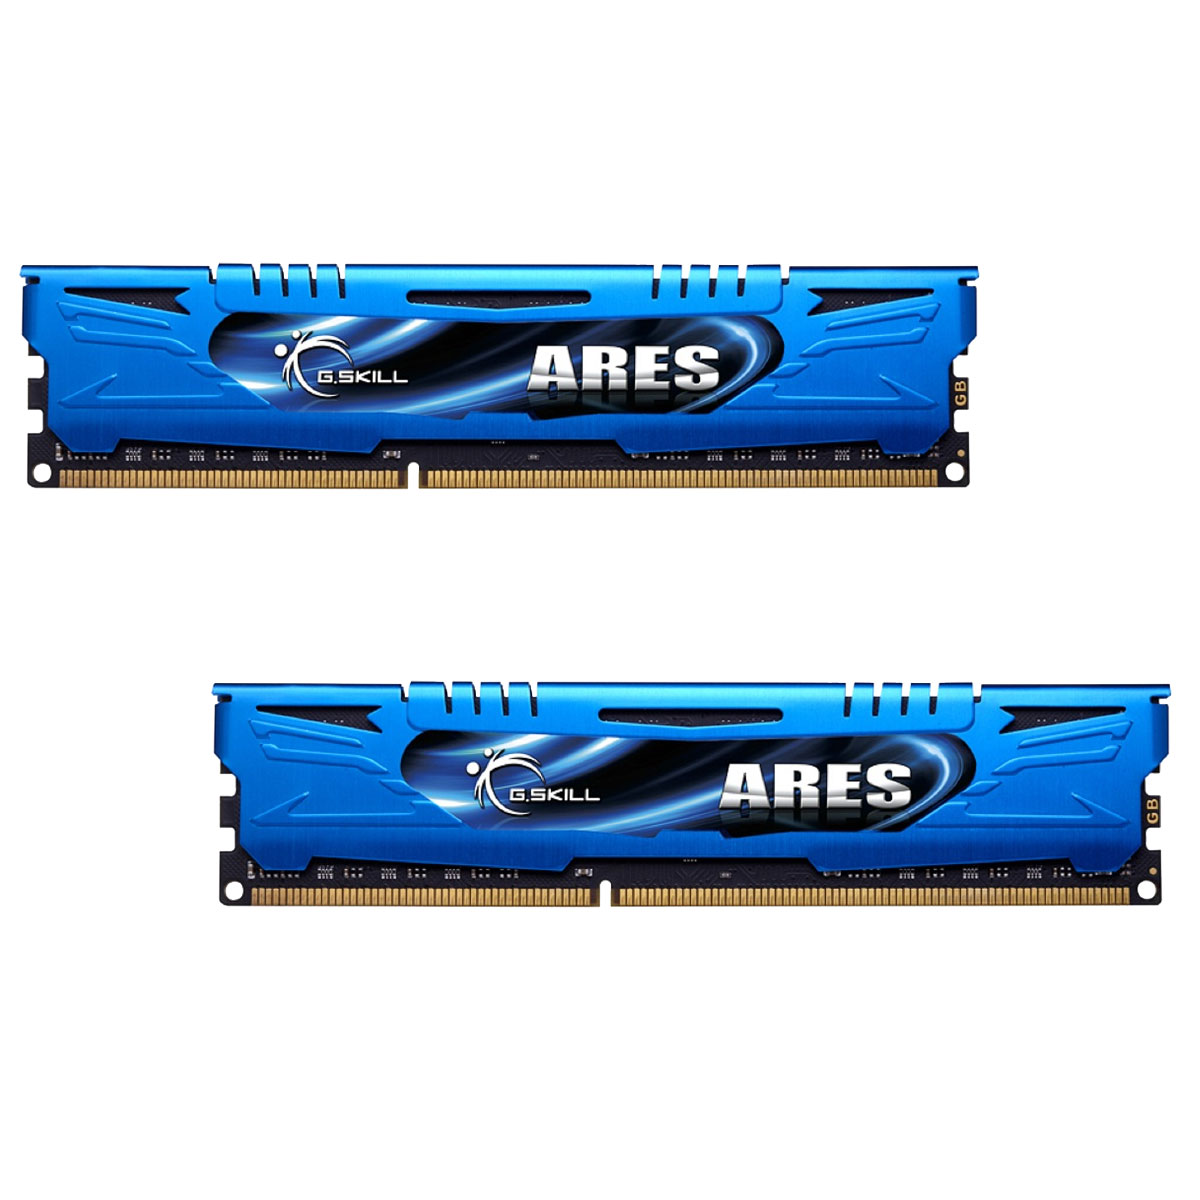 Mémoire PC G.Skill Ares Blue Series 8 Go (2 x 4 Go) DDR3 2133 MHz CL9 Kit Dual Channel DDR3 PC3-17000 - F3-2133C9D-8GAB (garantie à vie par G.Skill)